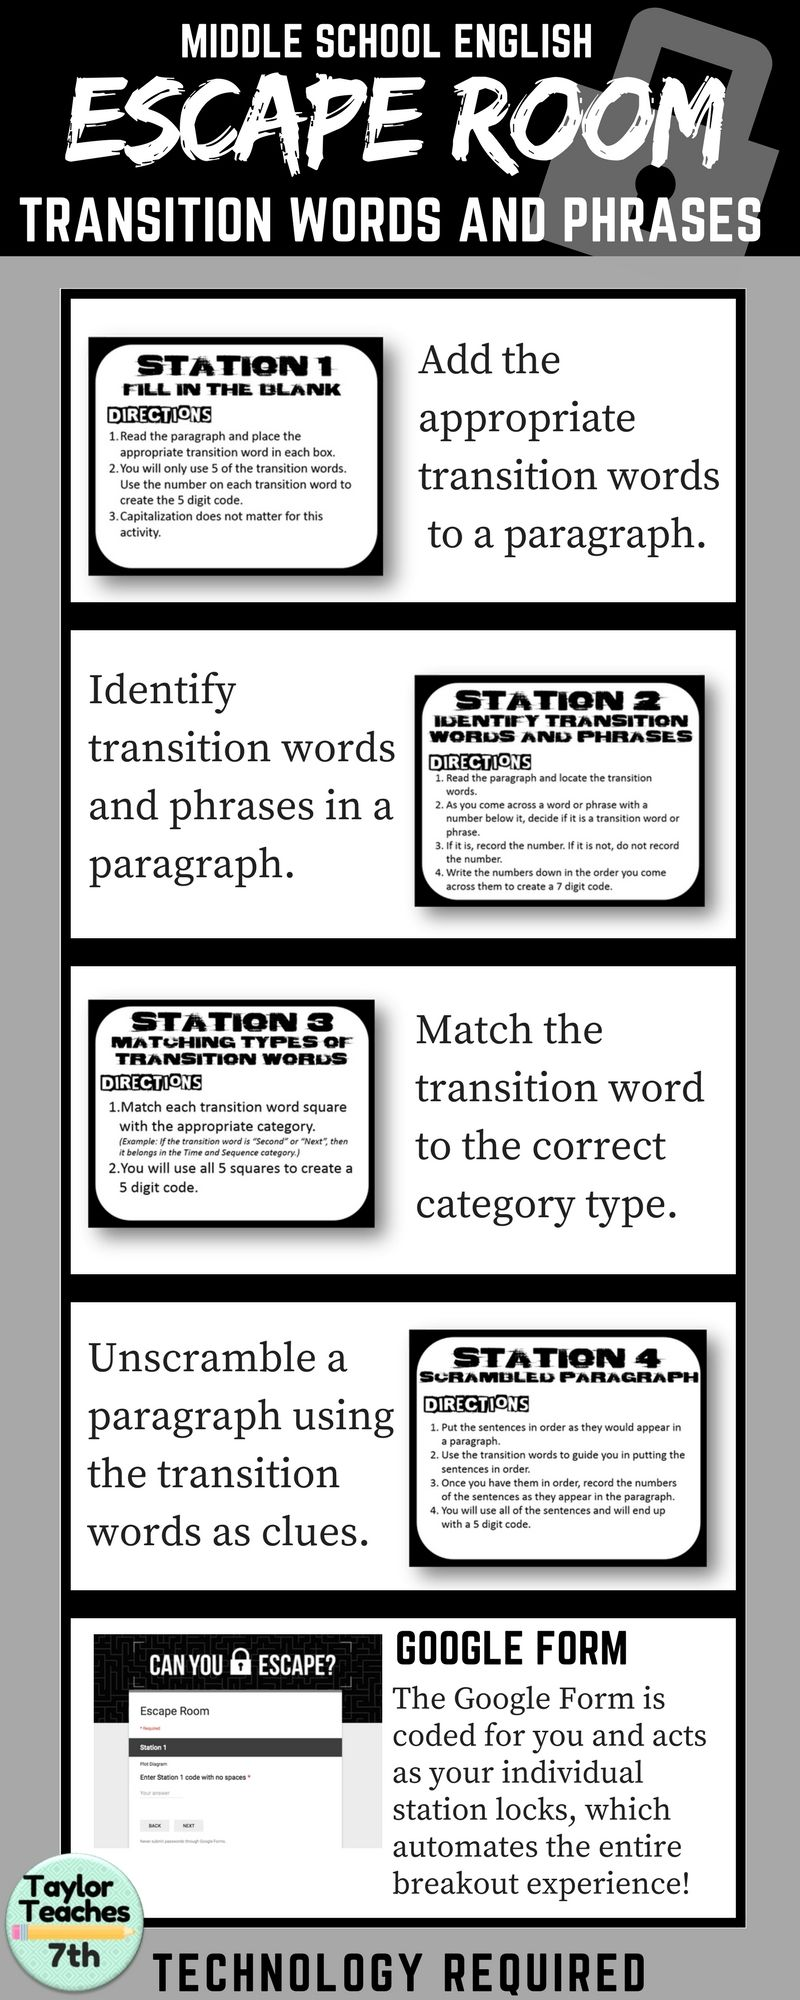 Workbooks transition worksheets for middle school : Transition Words - Escape Room - Middle School English | Social ...